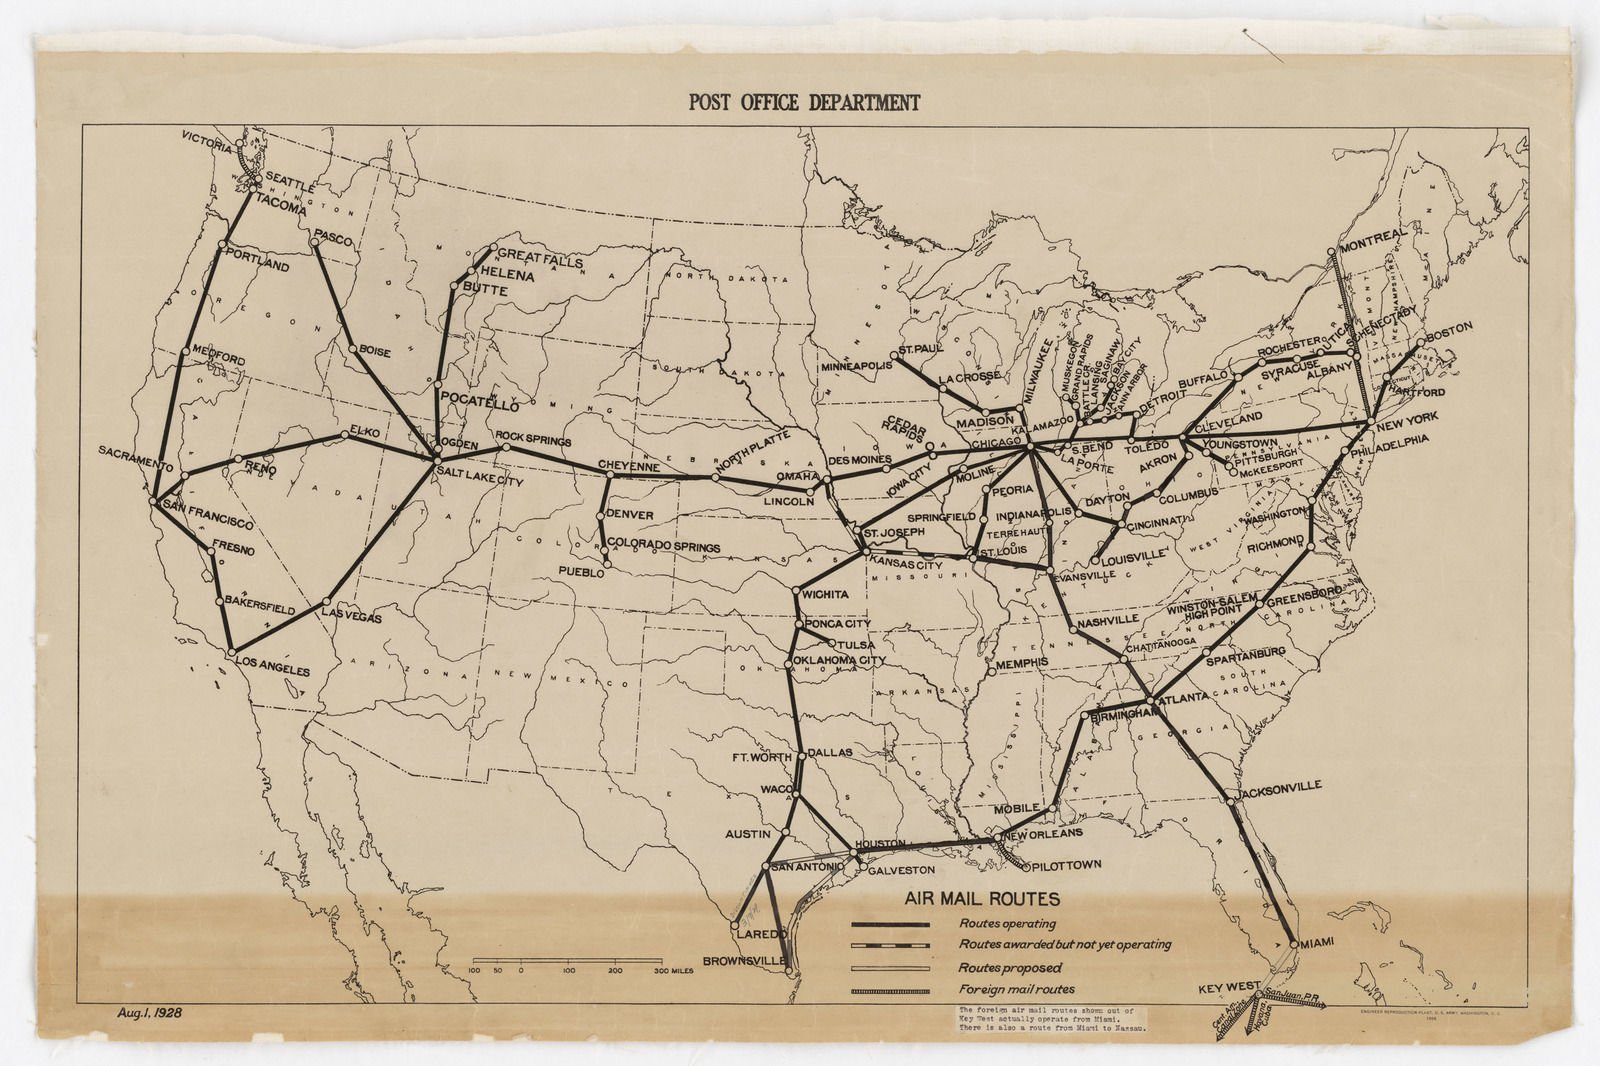 Image of: Post Office Department Map Of Continental U S Air Mail Routes U S National Archives Public Domain Image